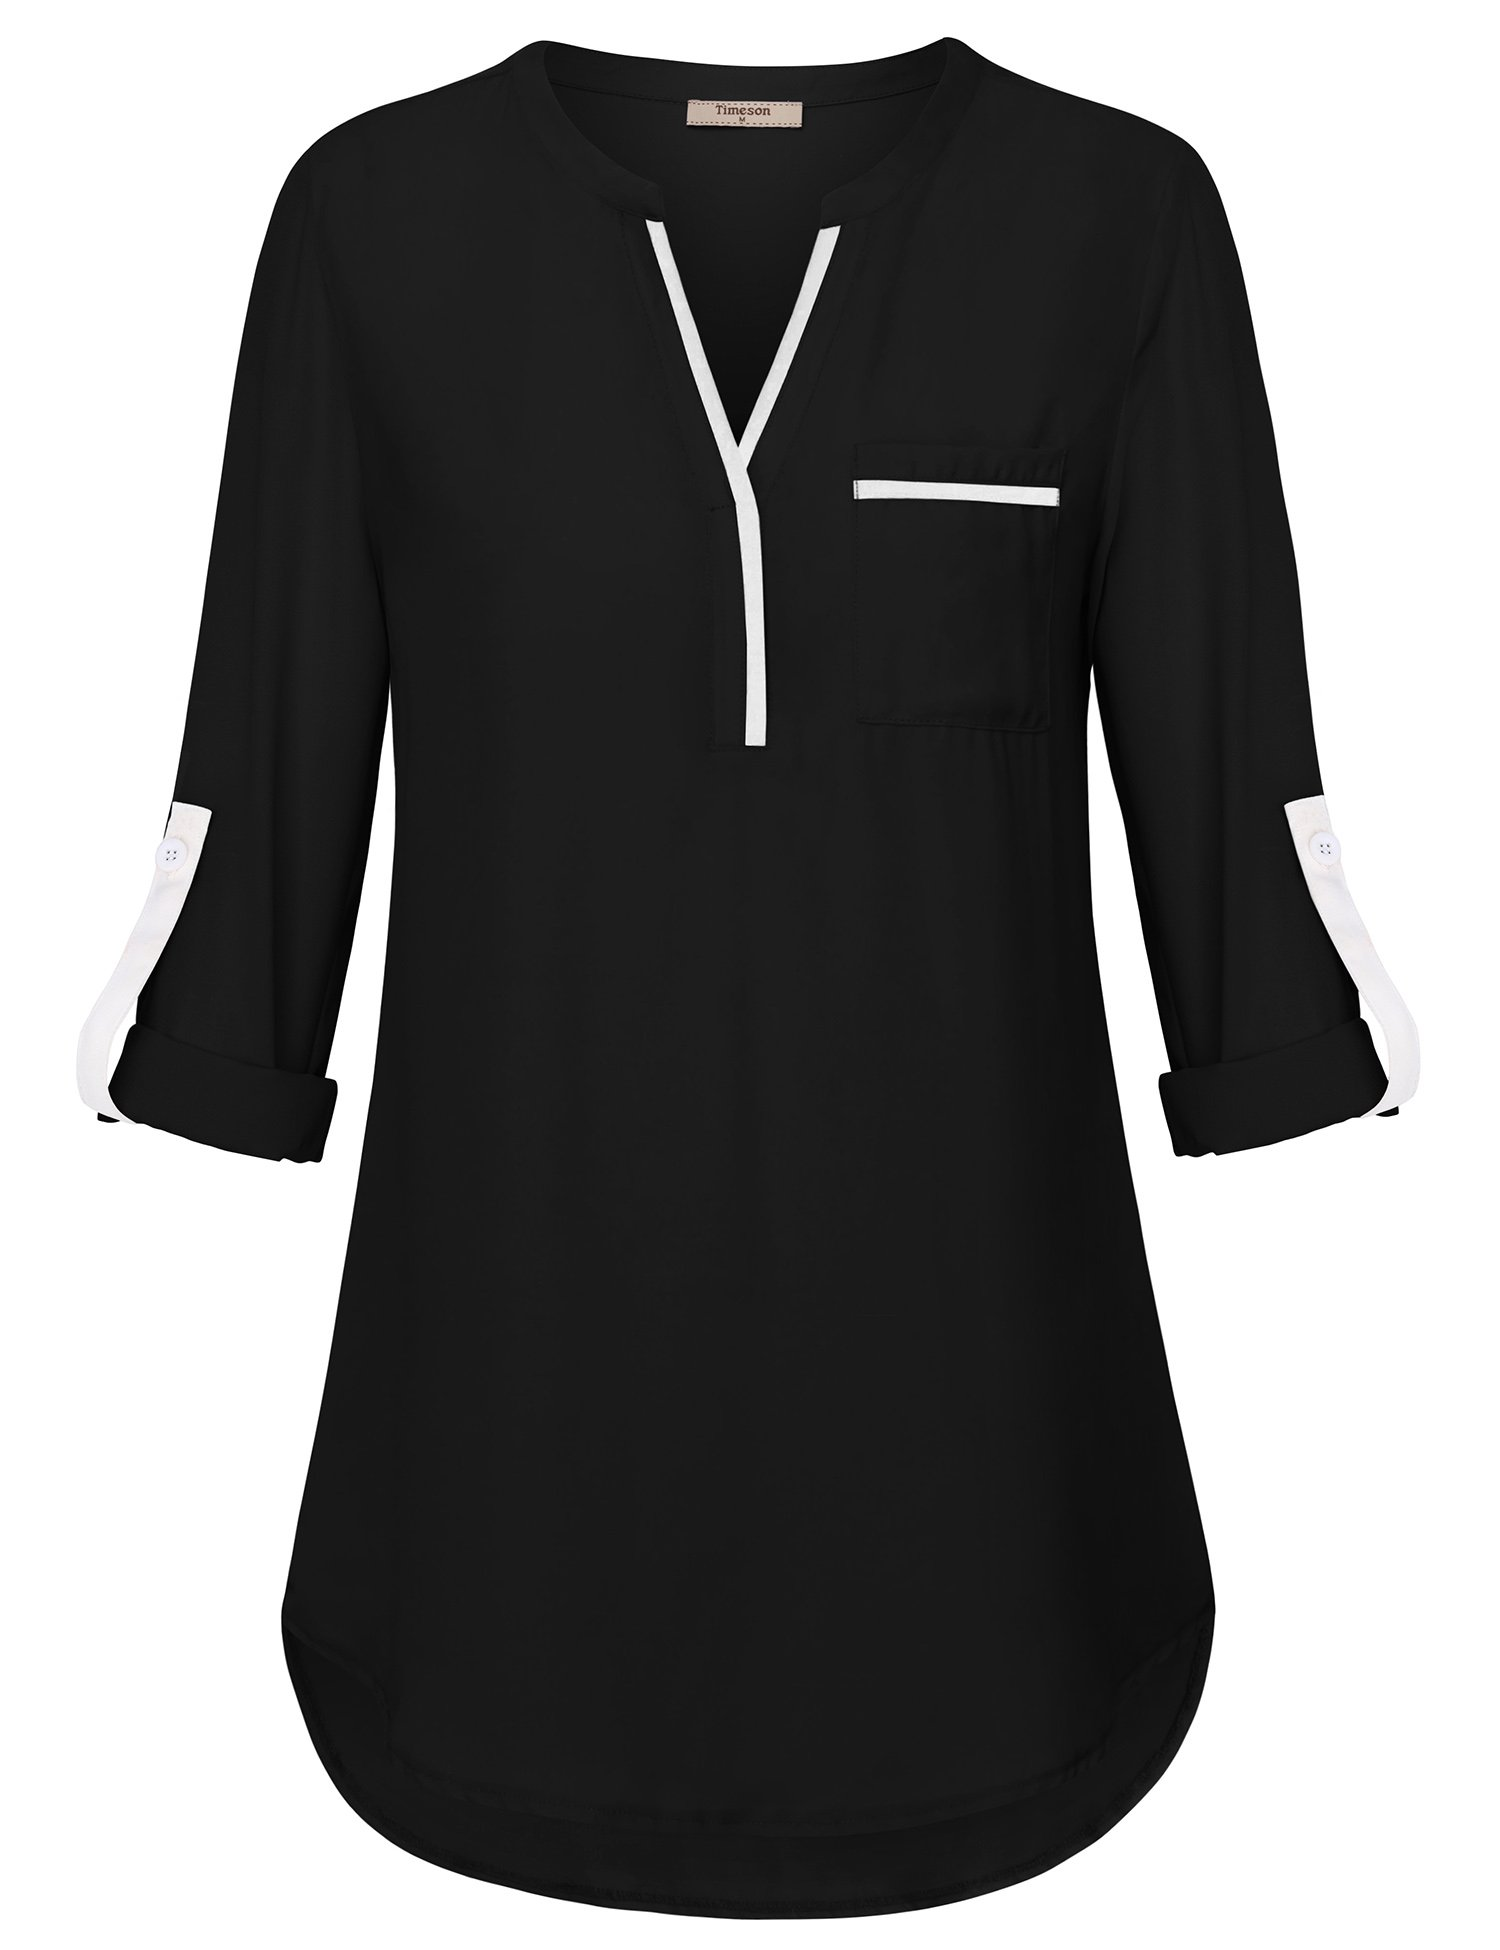 Womens Blouses and Tops for Work,Timeson Ladies 3/4 Sleeve Blouses Shirt High Low Chiffon Tunic Tops Split V Neck Pleated Curvy Hem Silky Lined Office Work Blouse Plus Size Dressy Shirt Black X-Large